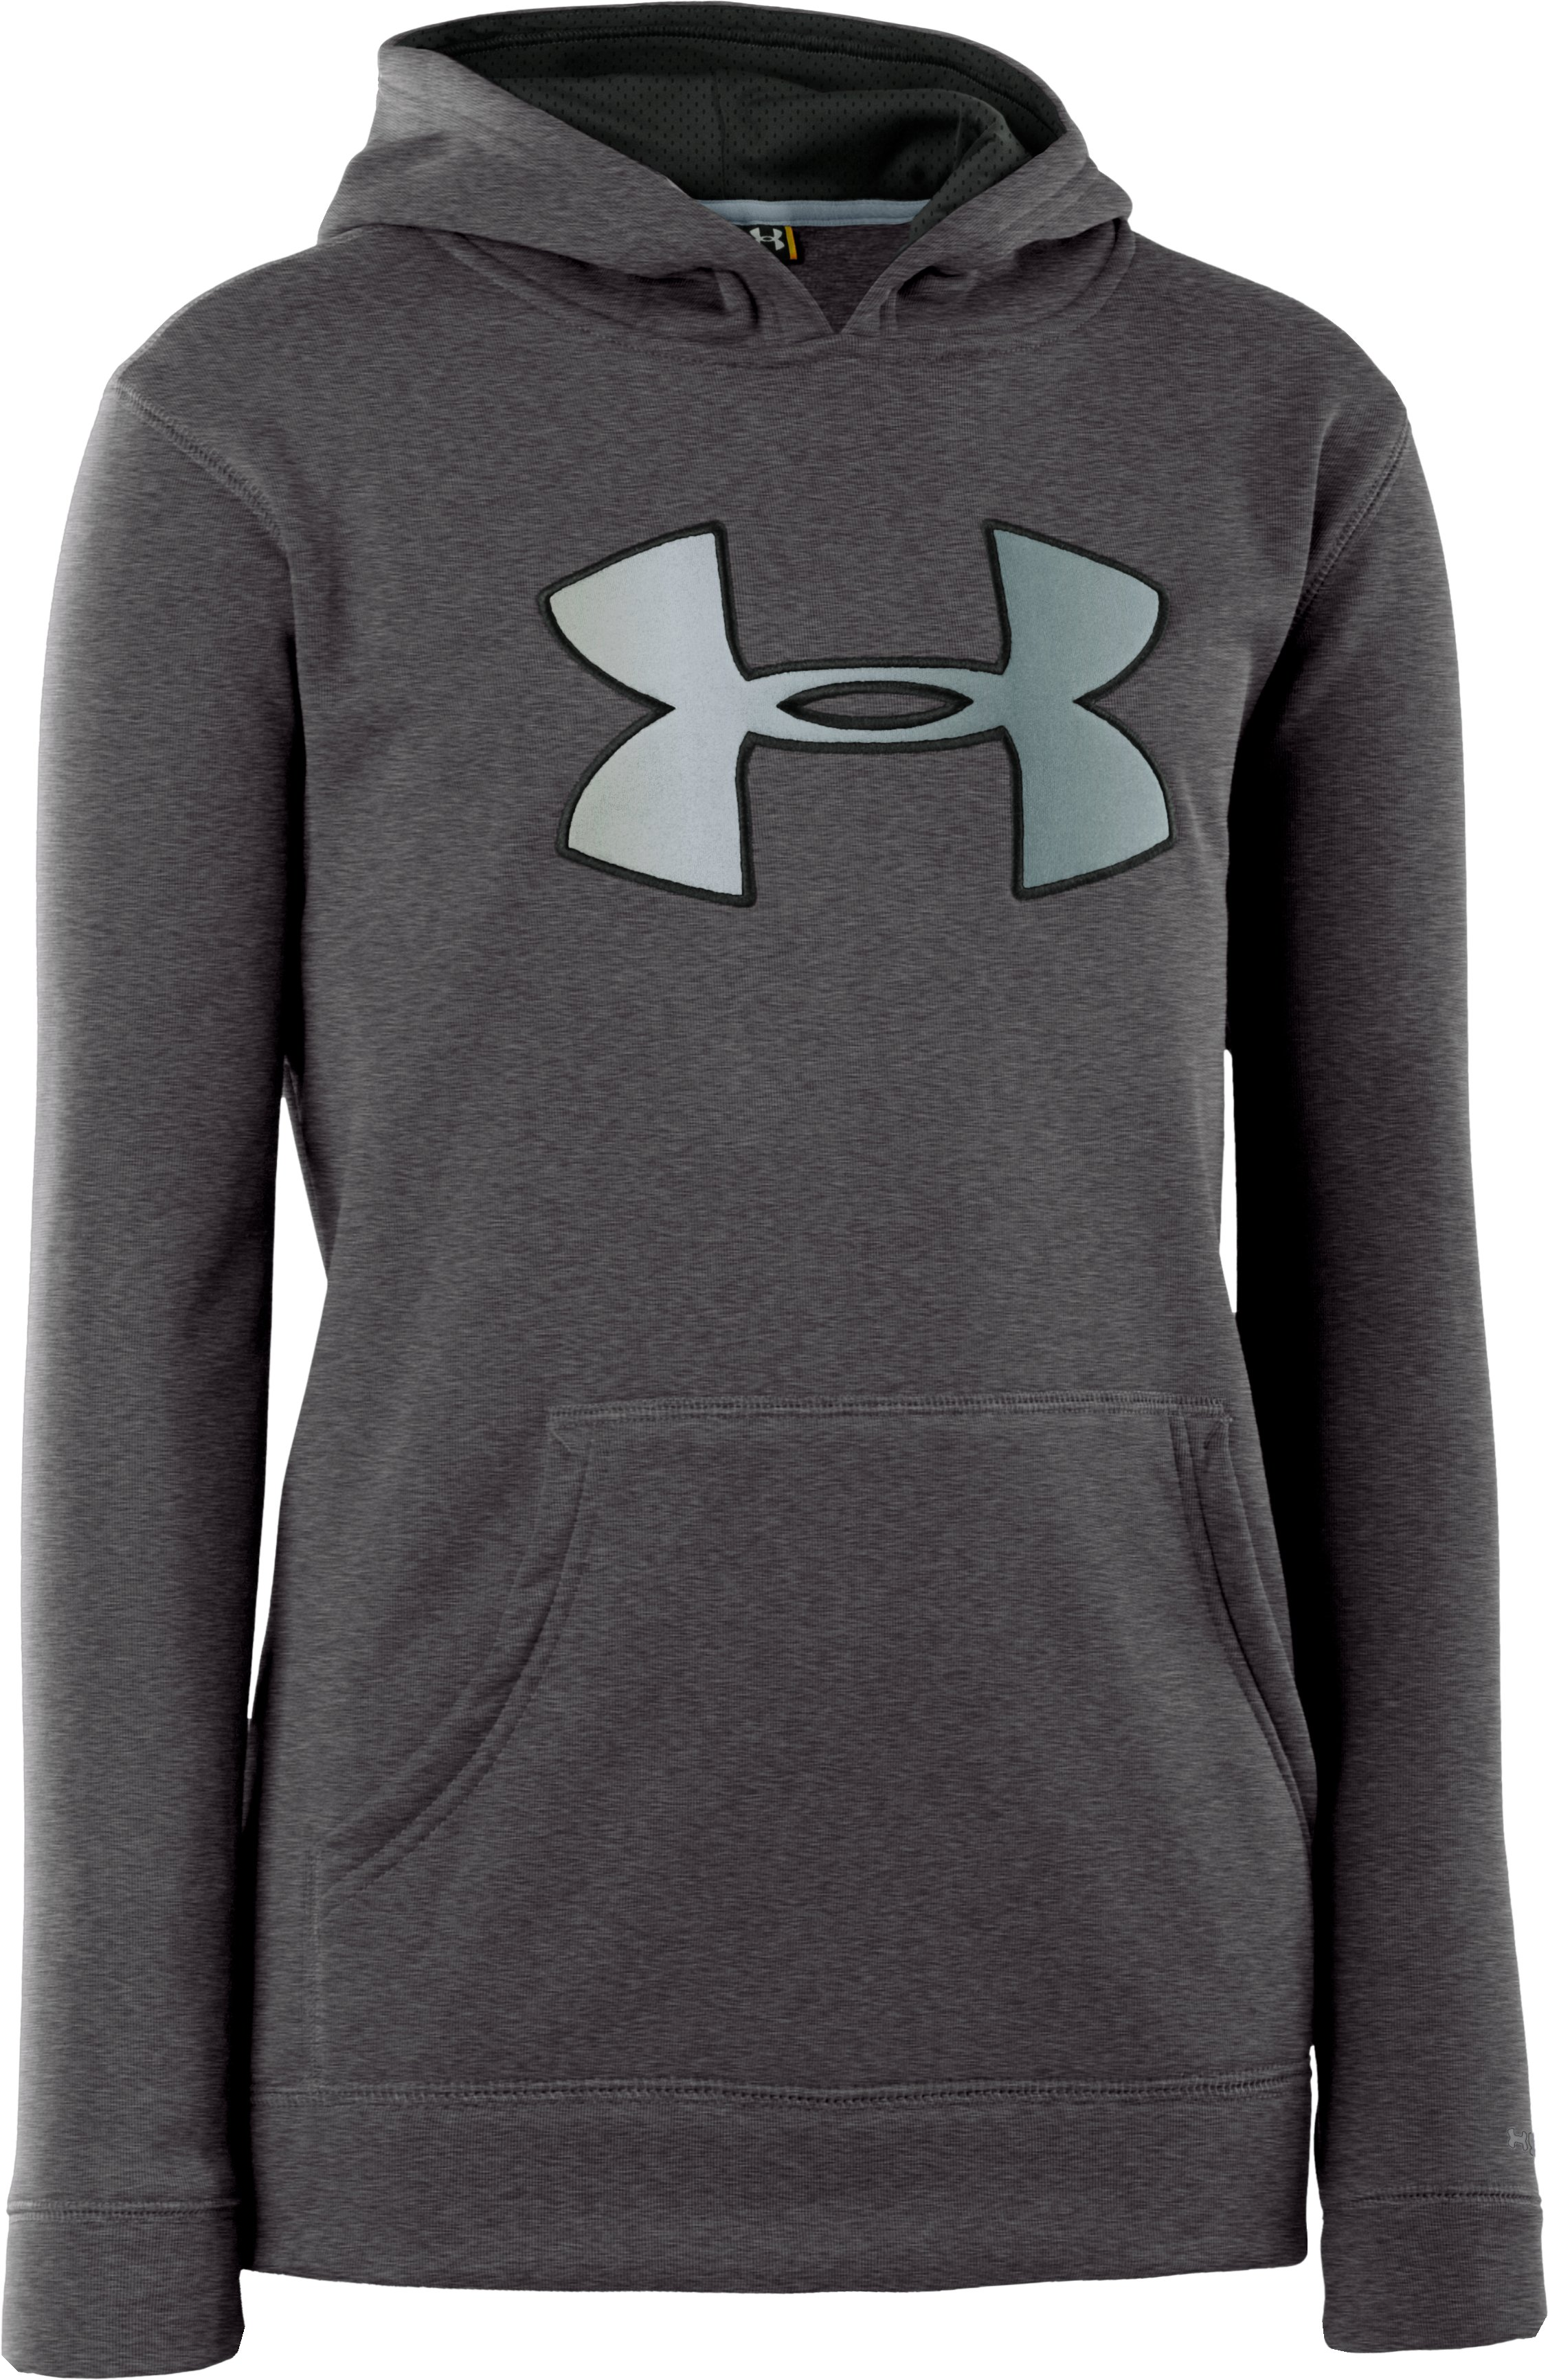 Boys' Armour® Fleece Storm Big Logo Hoodie, Carbon Heather, zoomed image